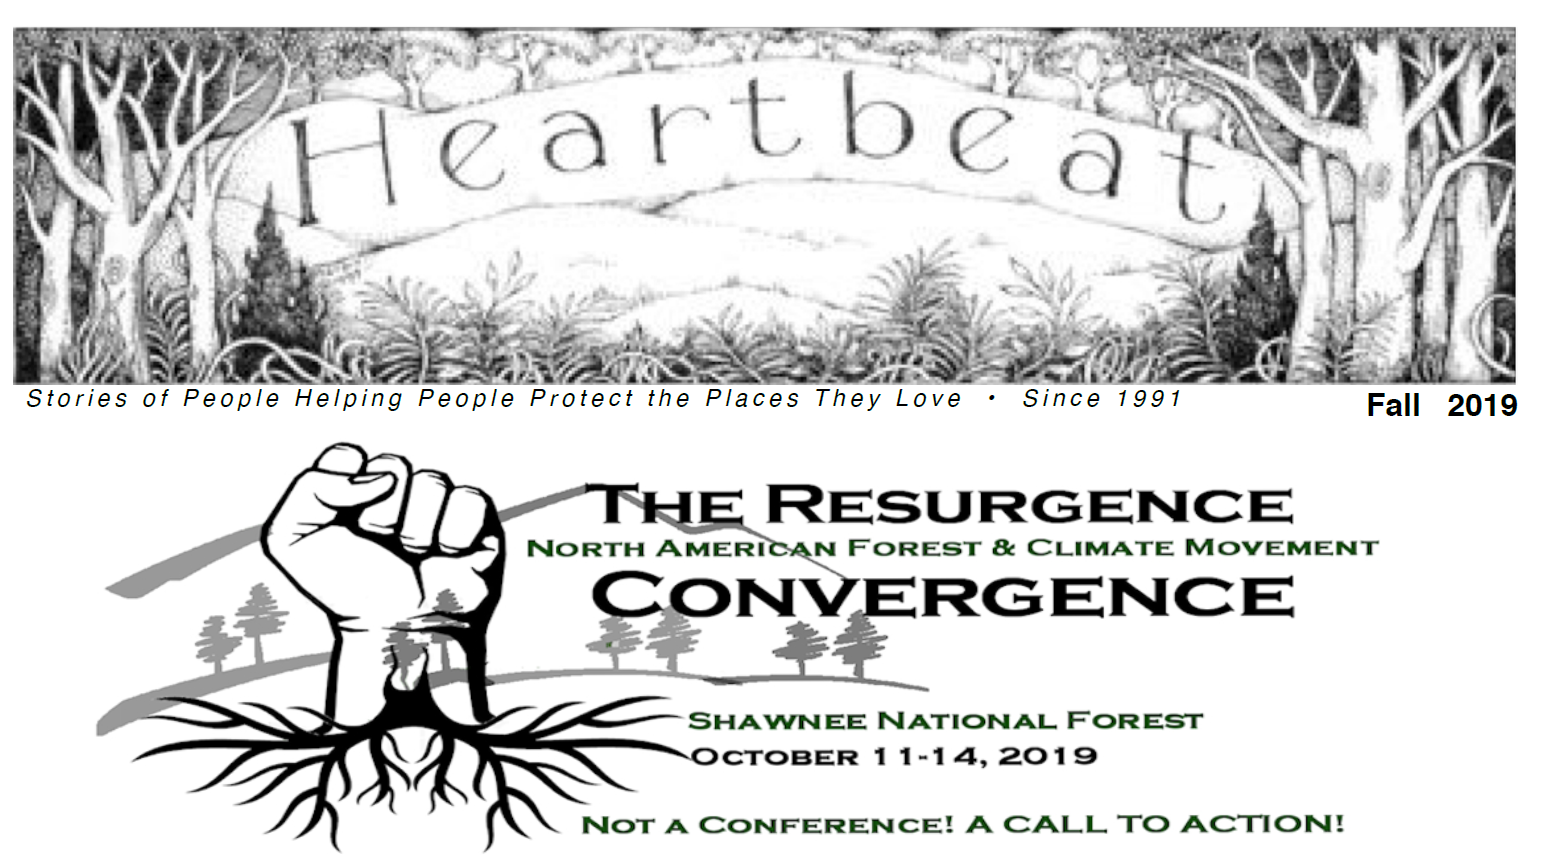 Latest Edition of the Heartwood promotes the Convergence!